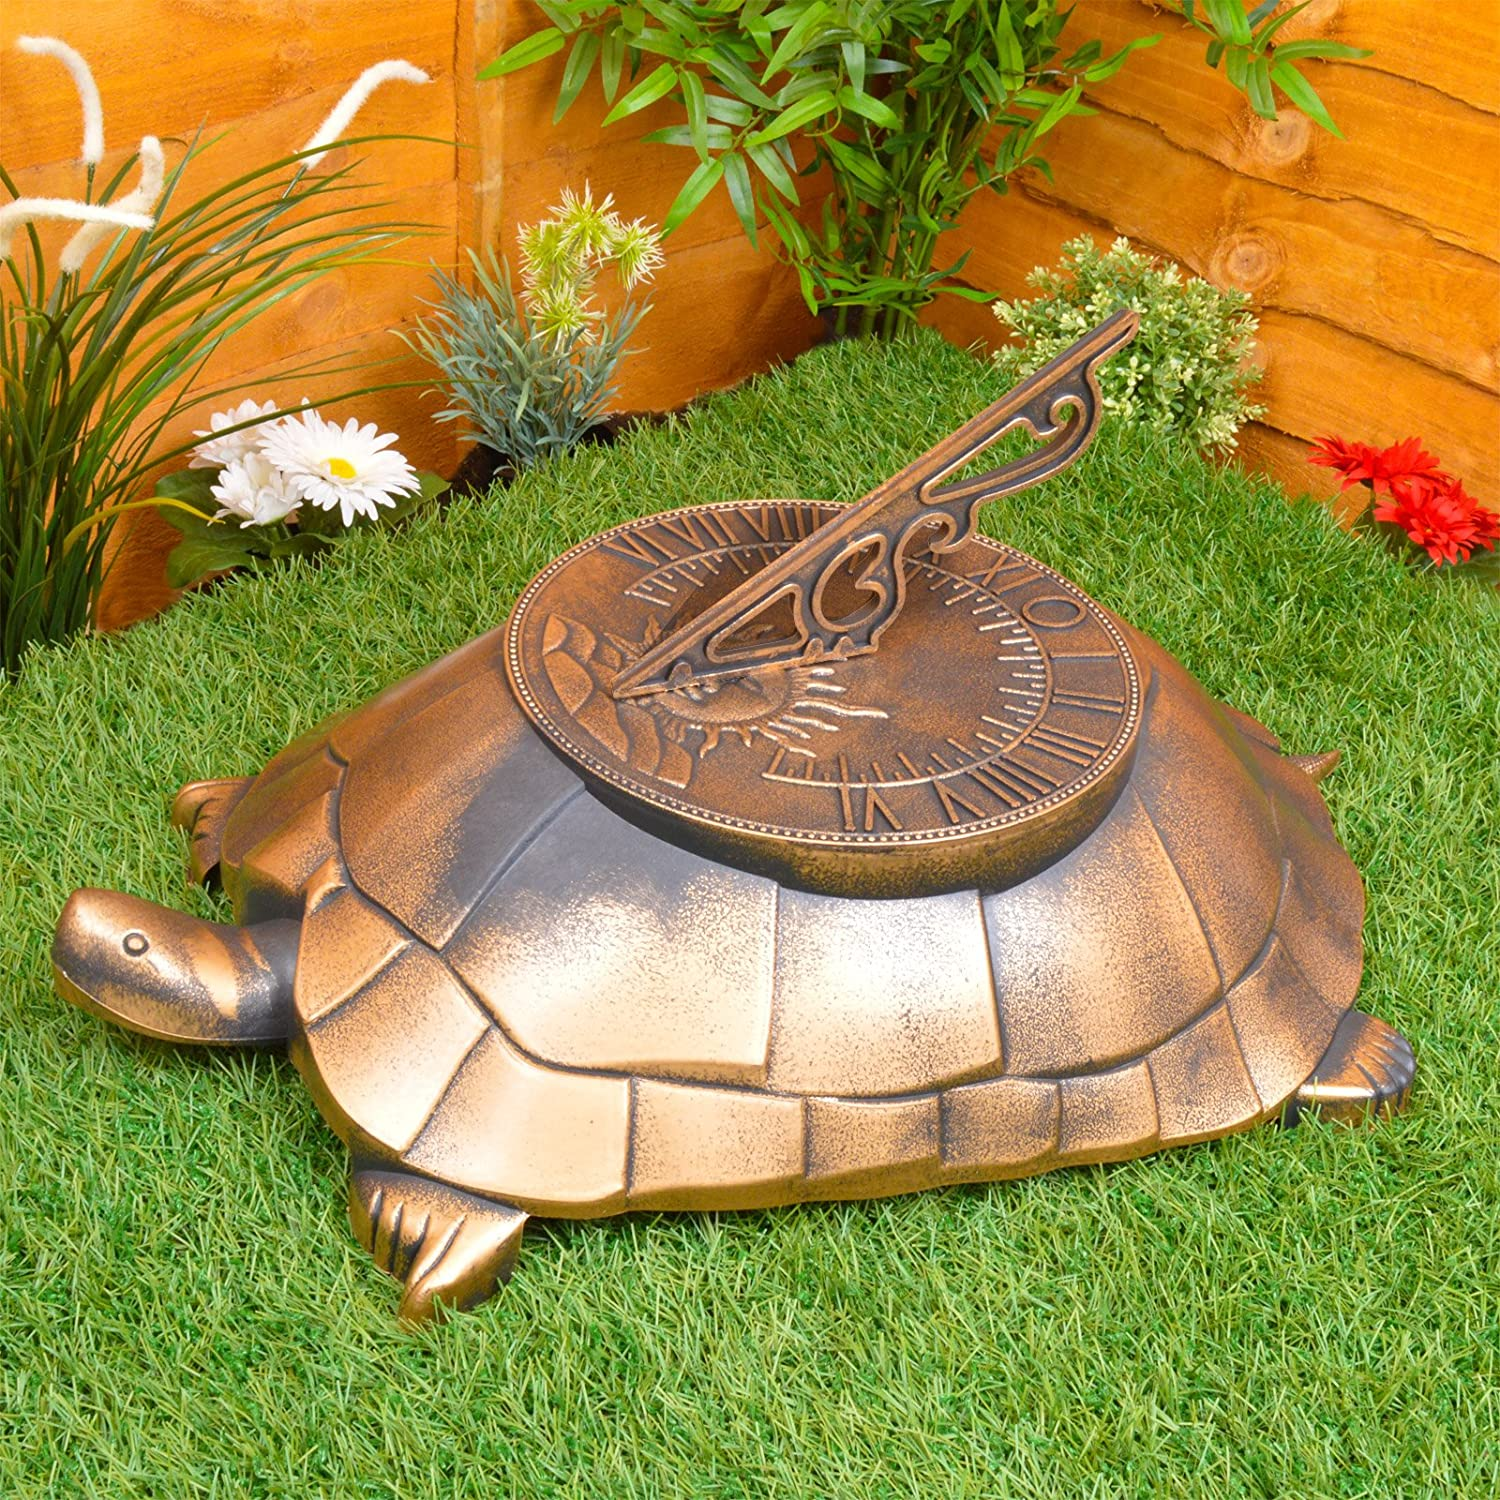 Large Tortoise Sundial Decoration   Lightweight Plastic And Weatherproof:  Amazon.co.uk: Garden U0026 Outdoors